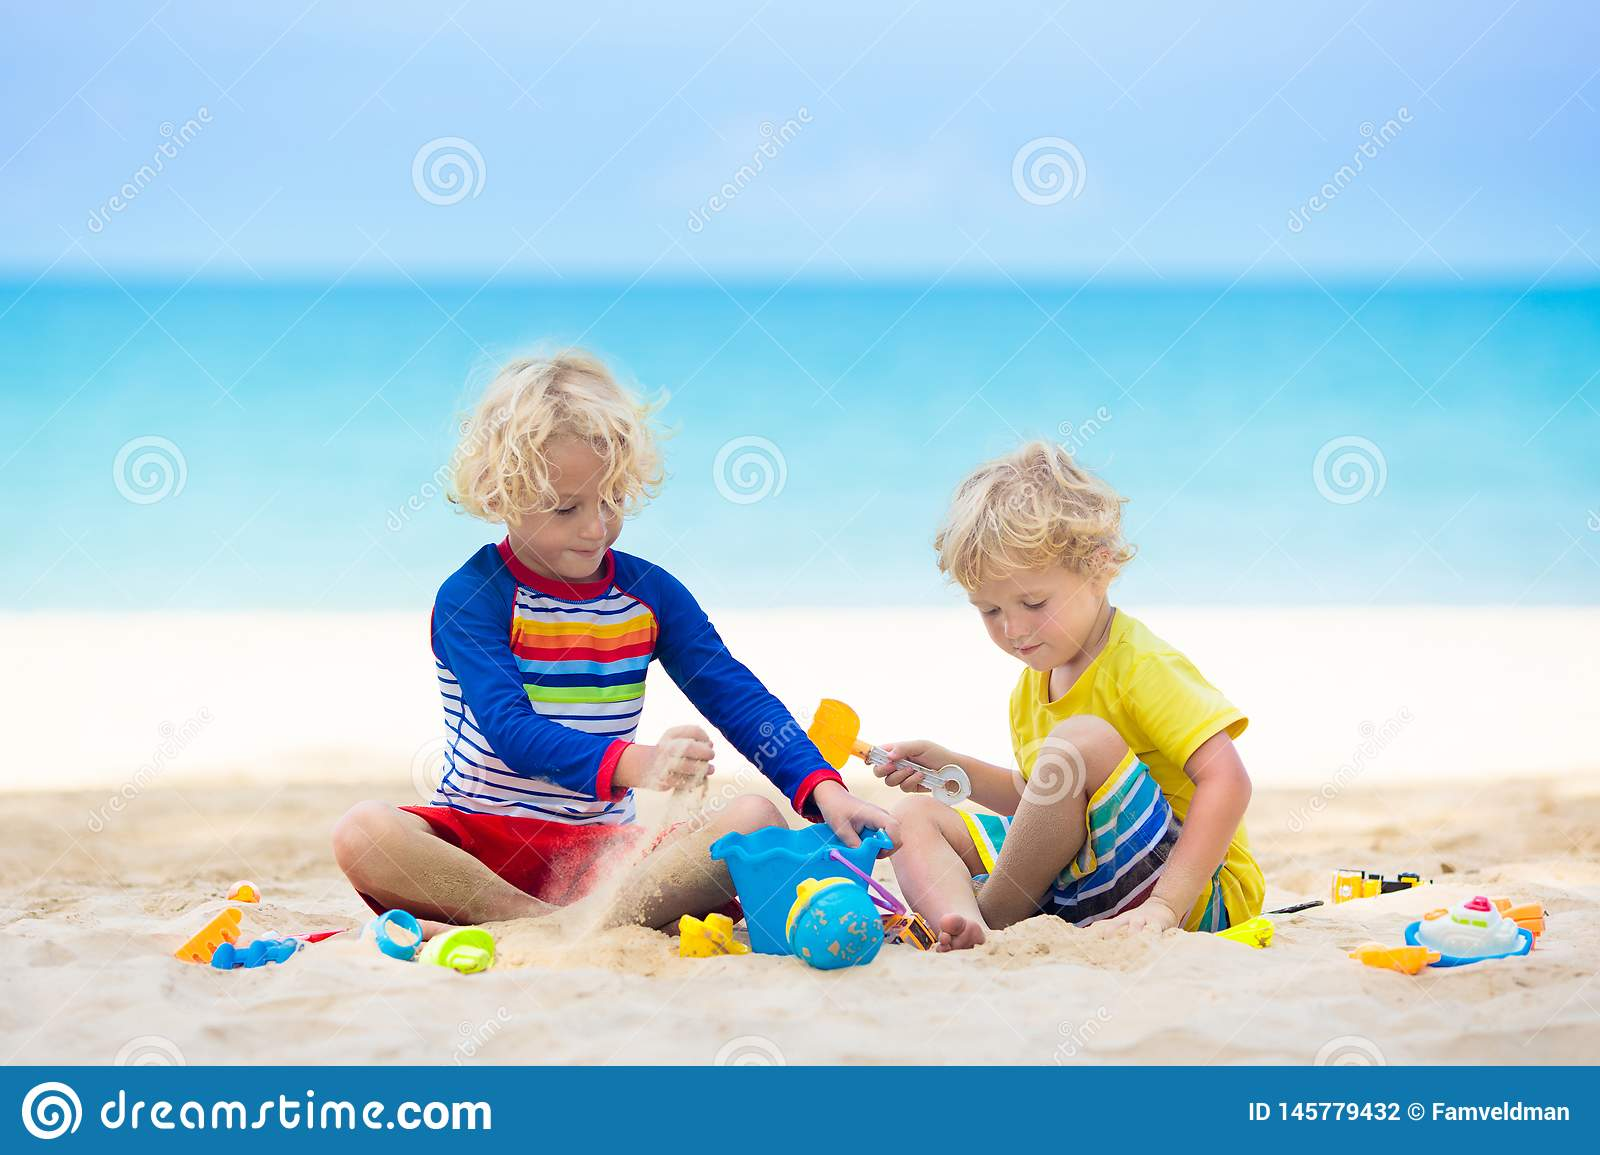 Kids playing on beach. Children play at sea